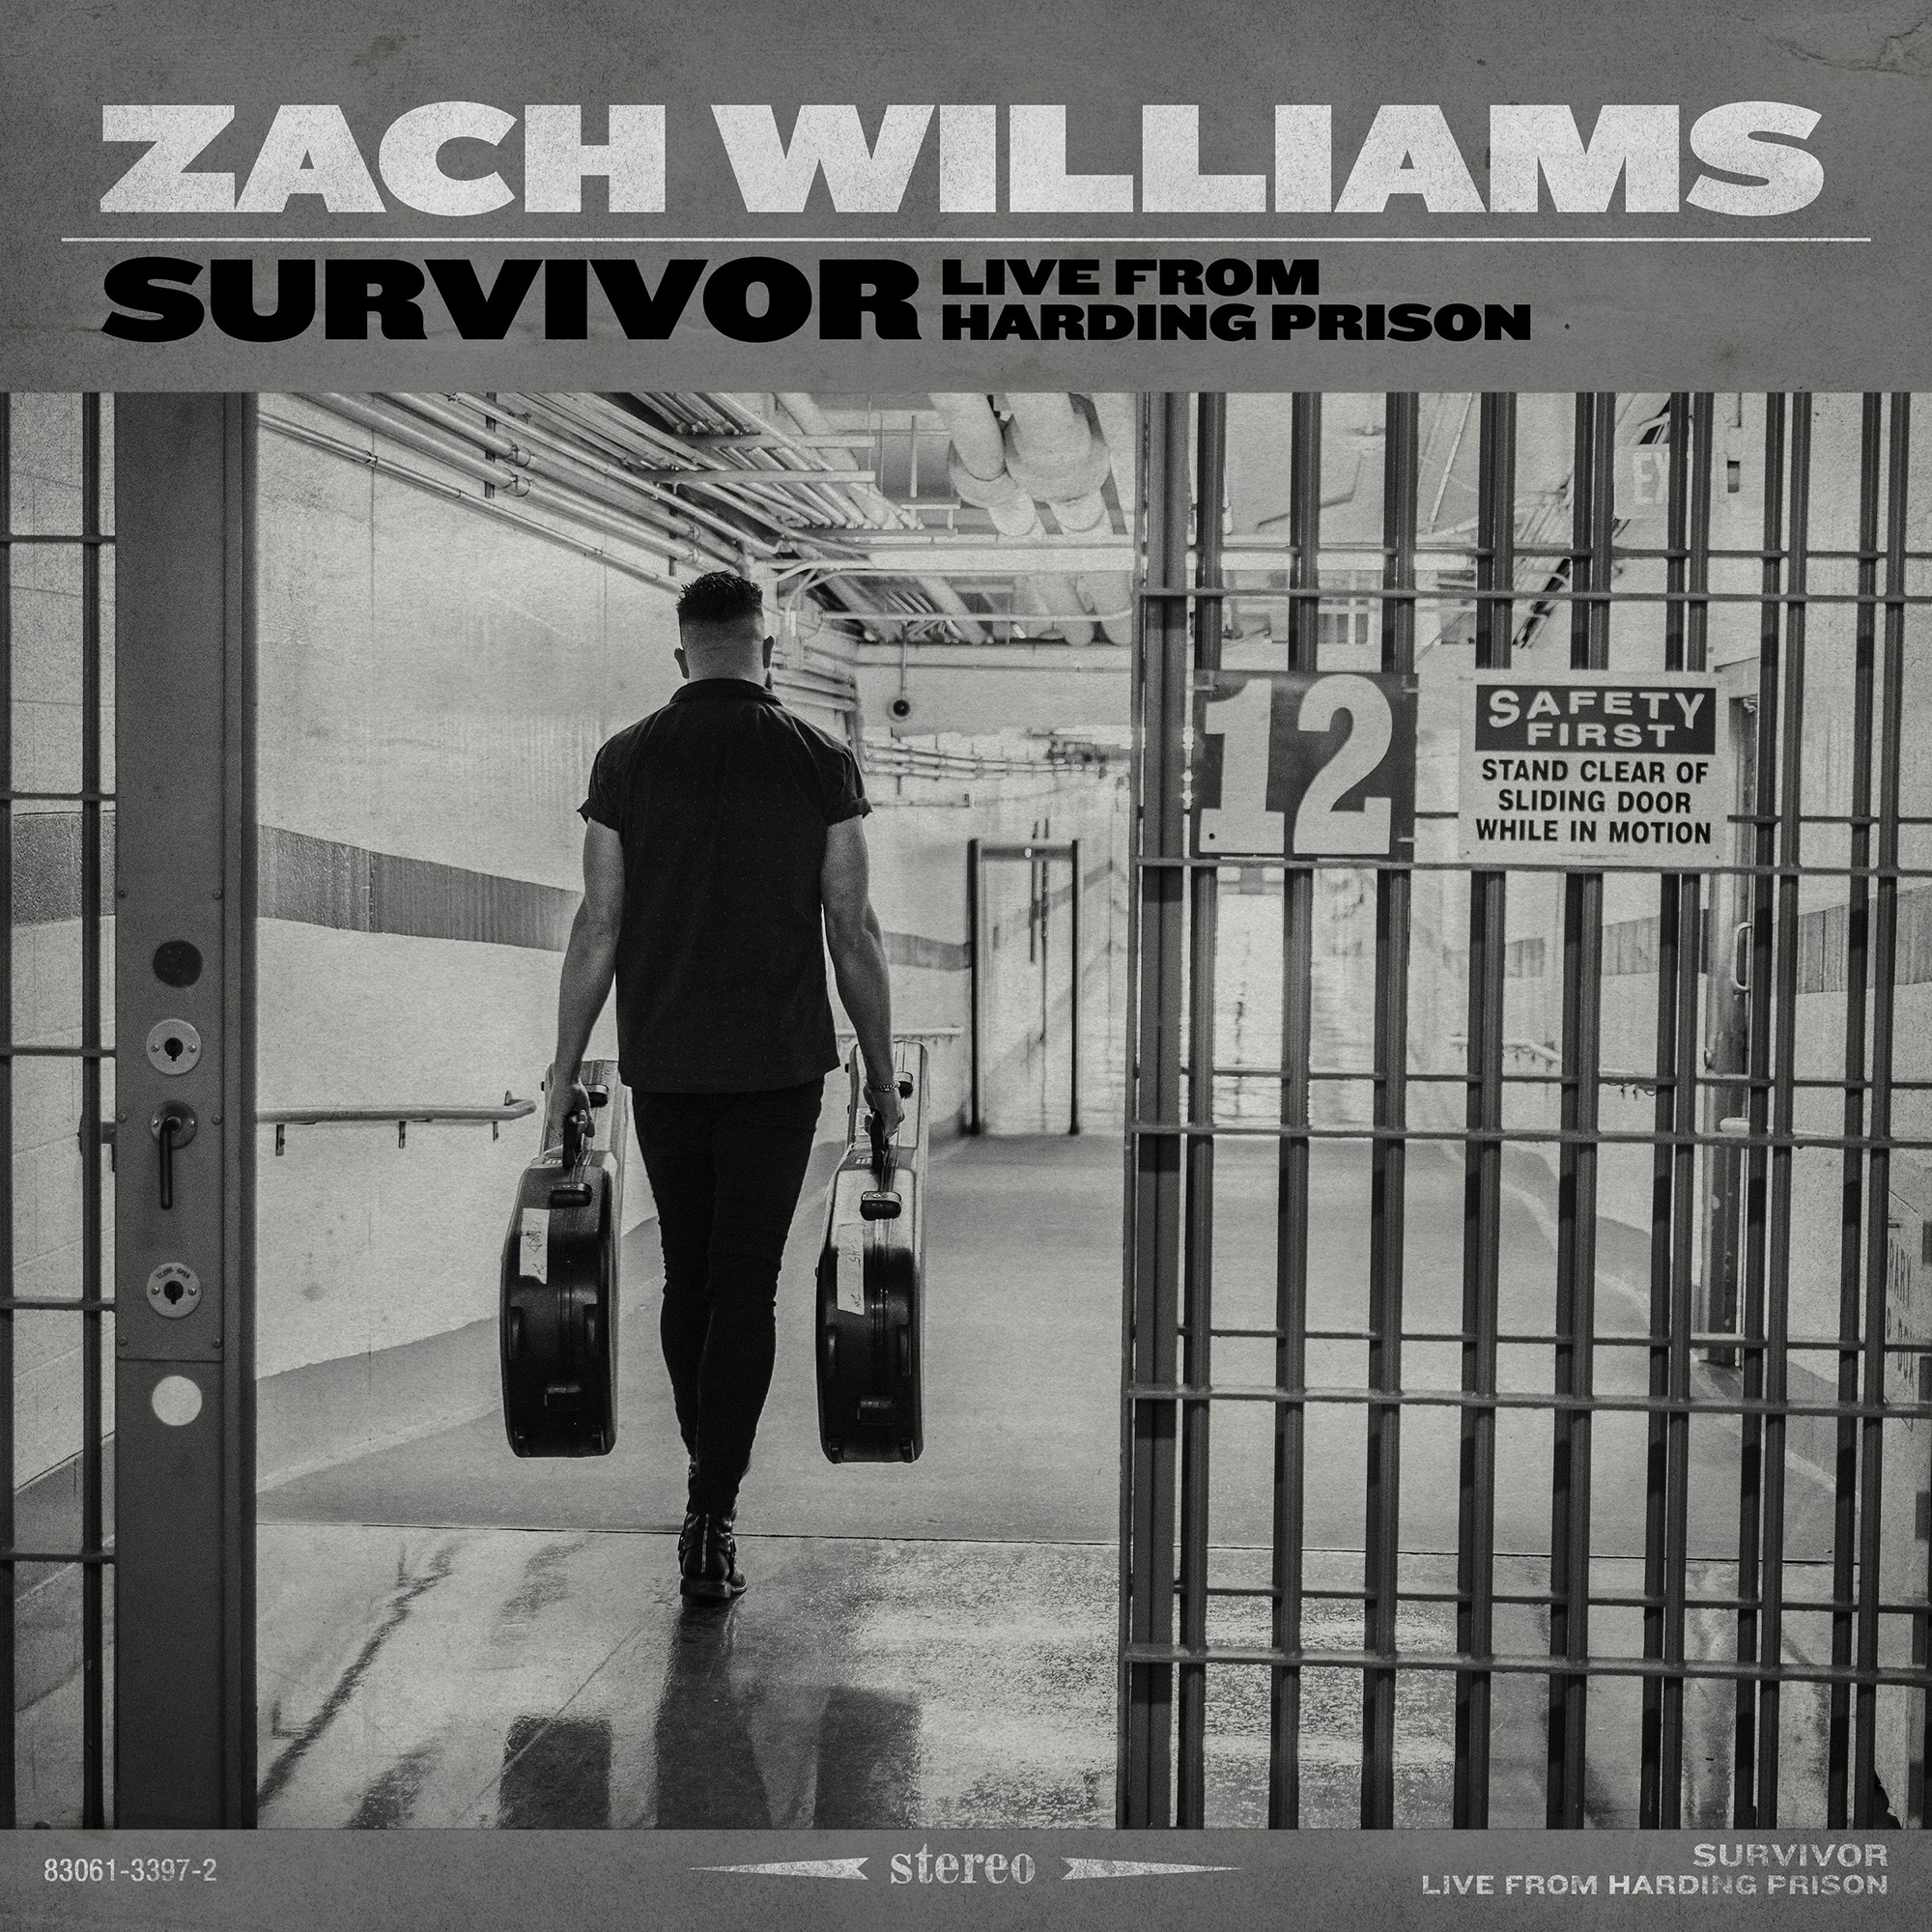 Live from Harding Prison with Zach Williams